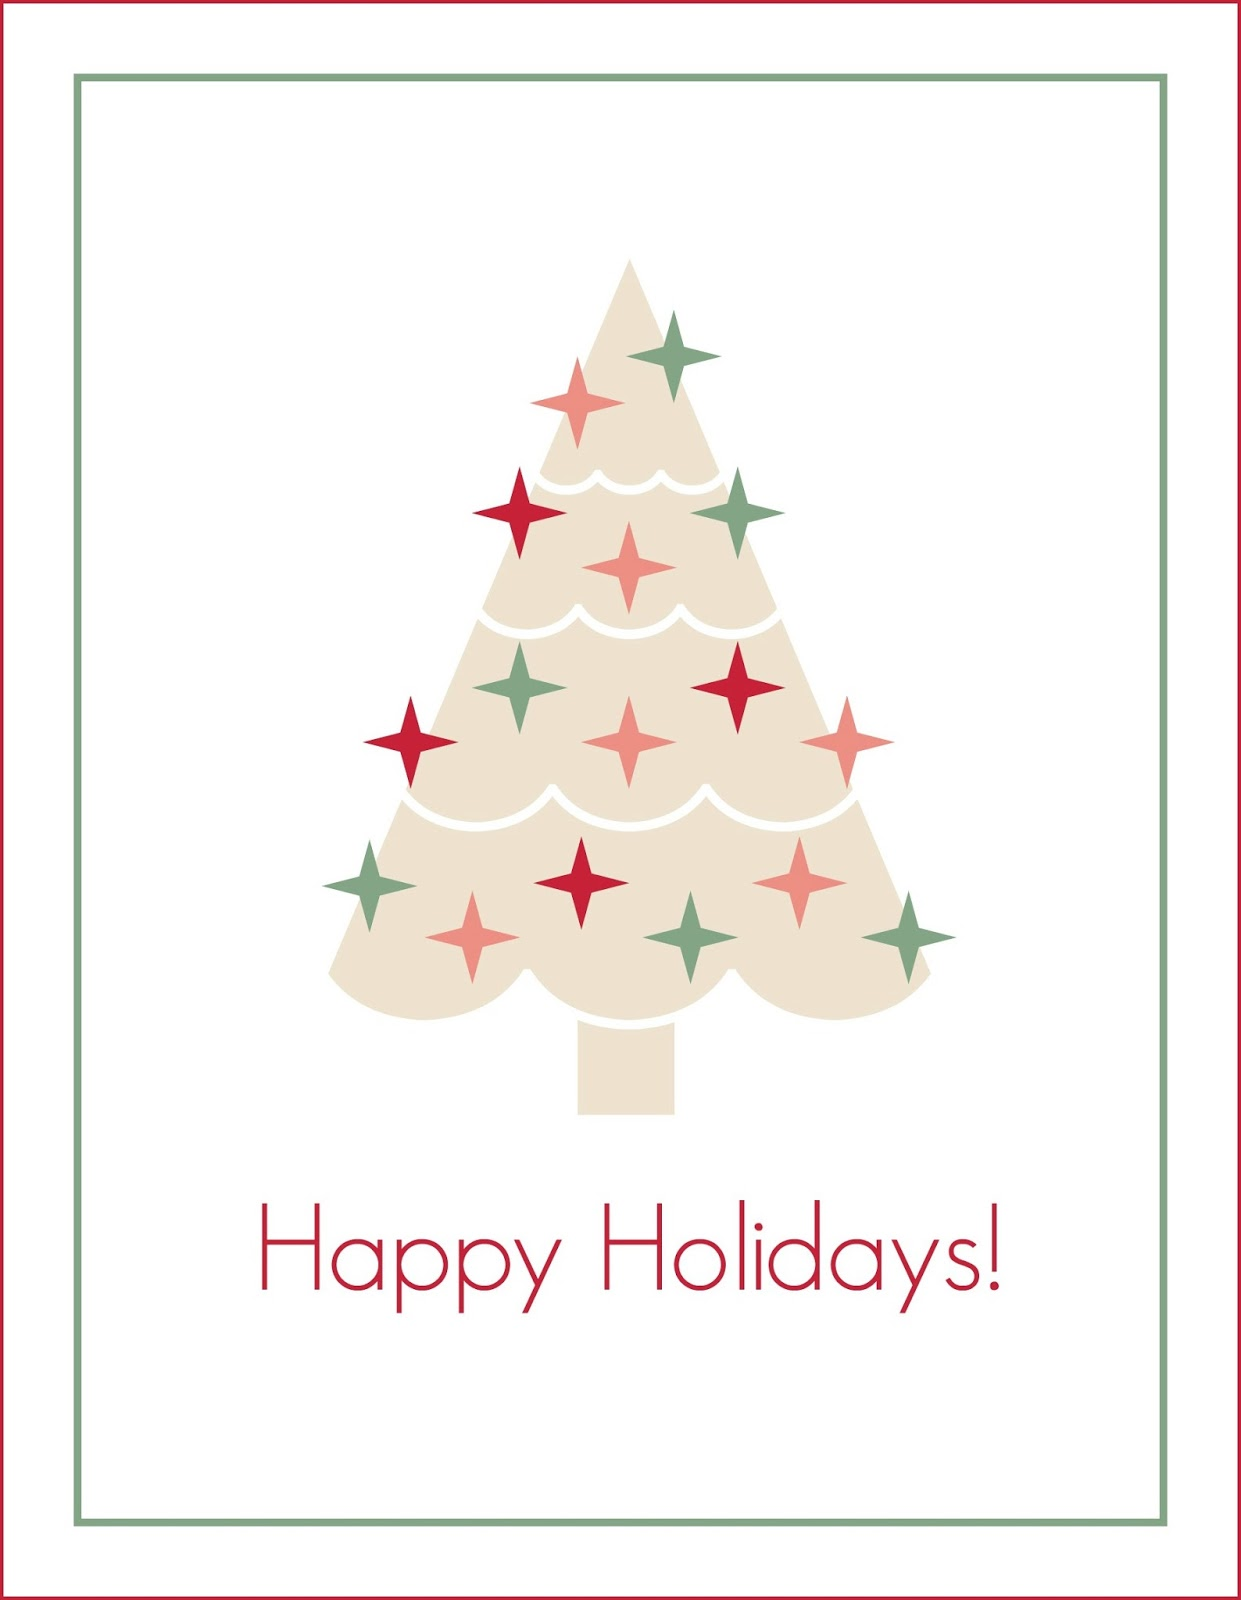 Peachy Keen Blog: FREE Christmas Printable 8x10